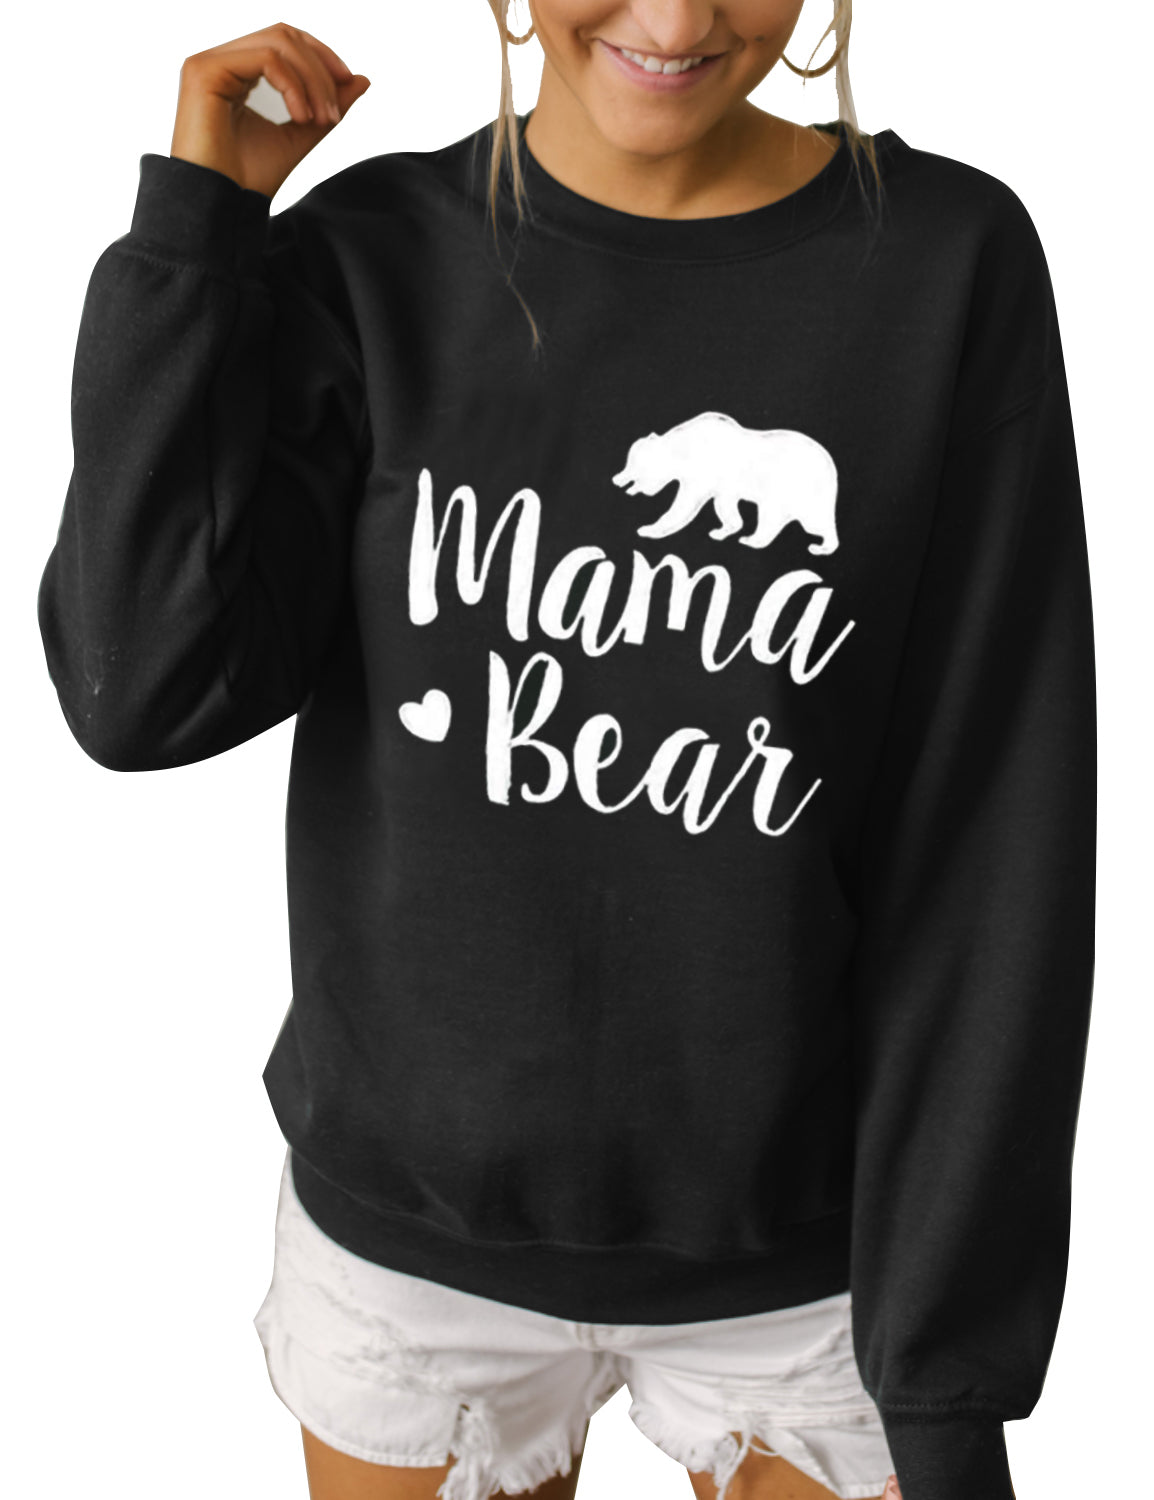 Blooming Jelly_Oversized Mama Bear Print Sweatshirt_Letter Print_305035_02_Loose Women Autumn&Winter Wear_Tops_Sweatshirt